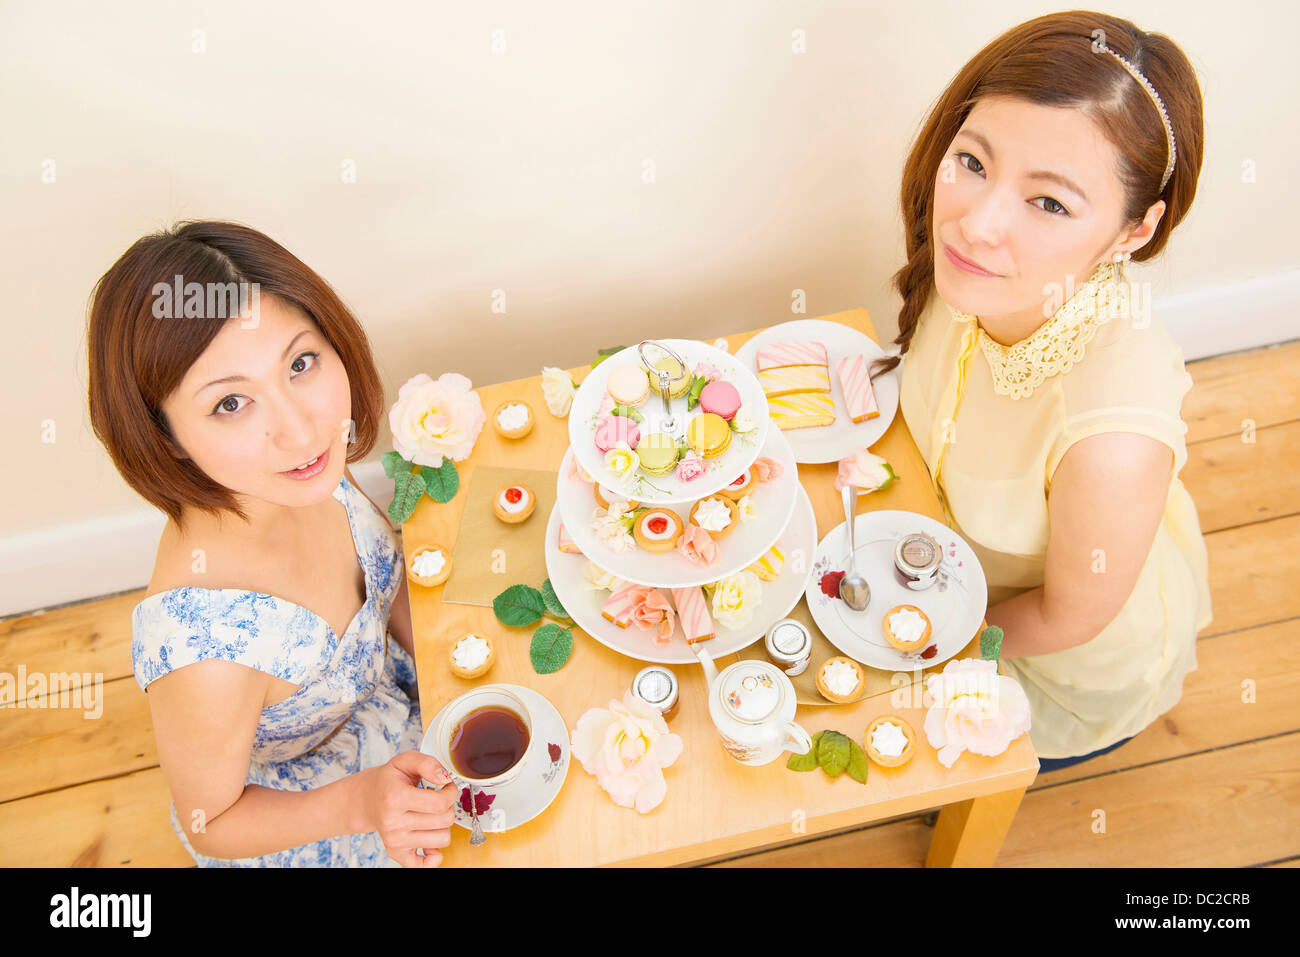 Two women looking up from their teatime treats - Stock Image